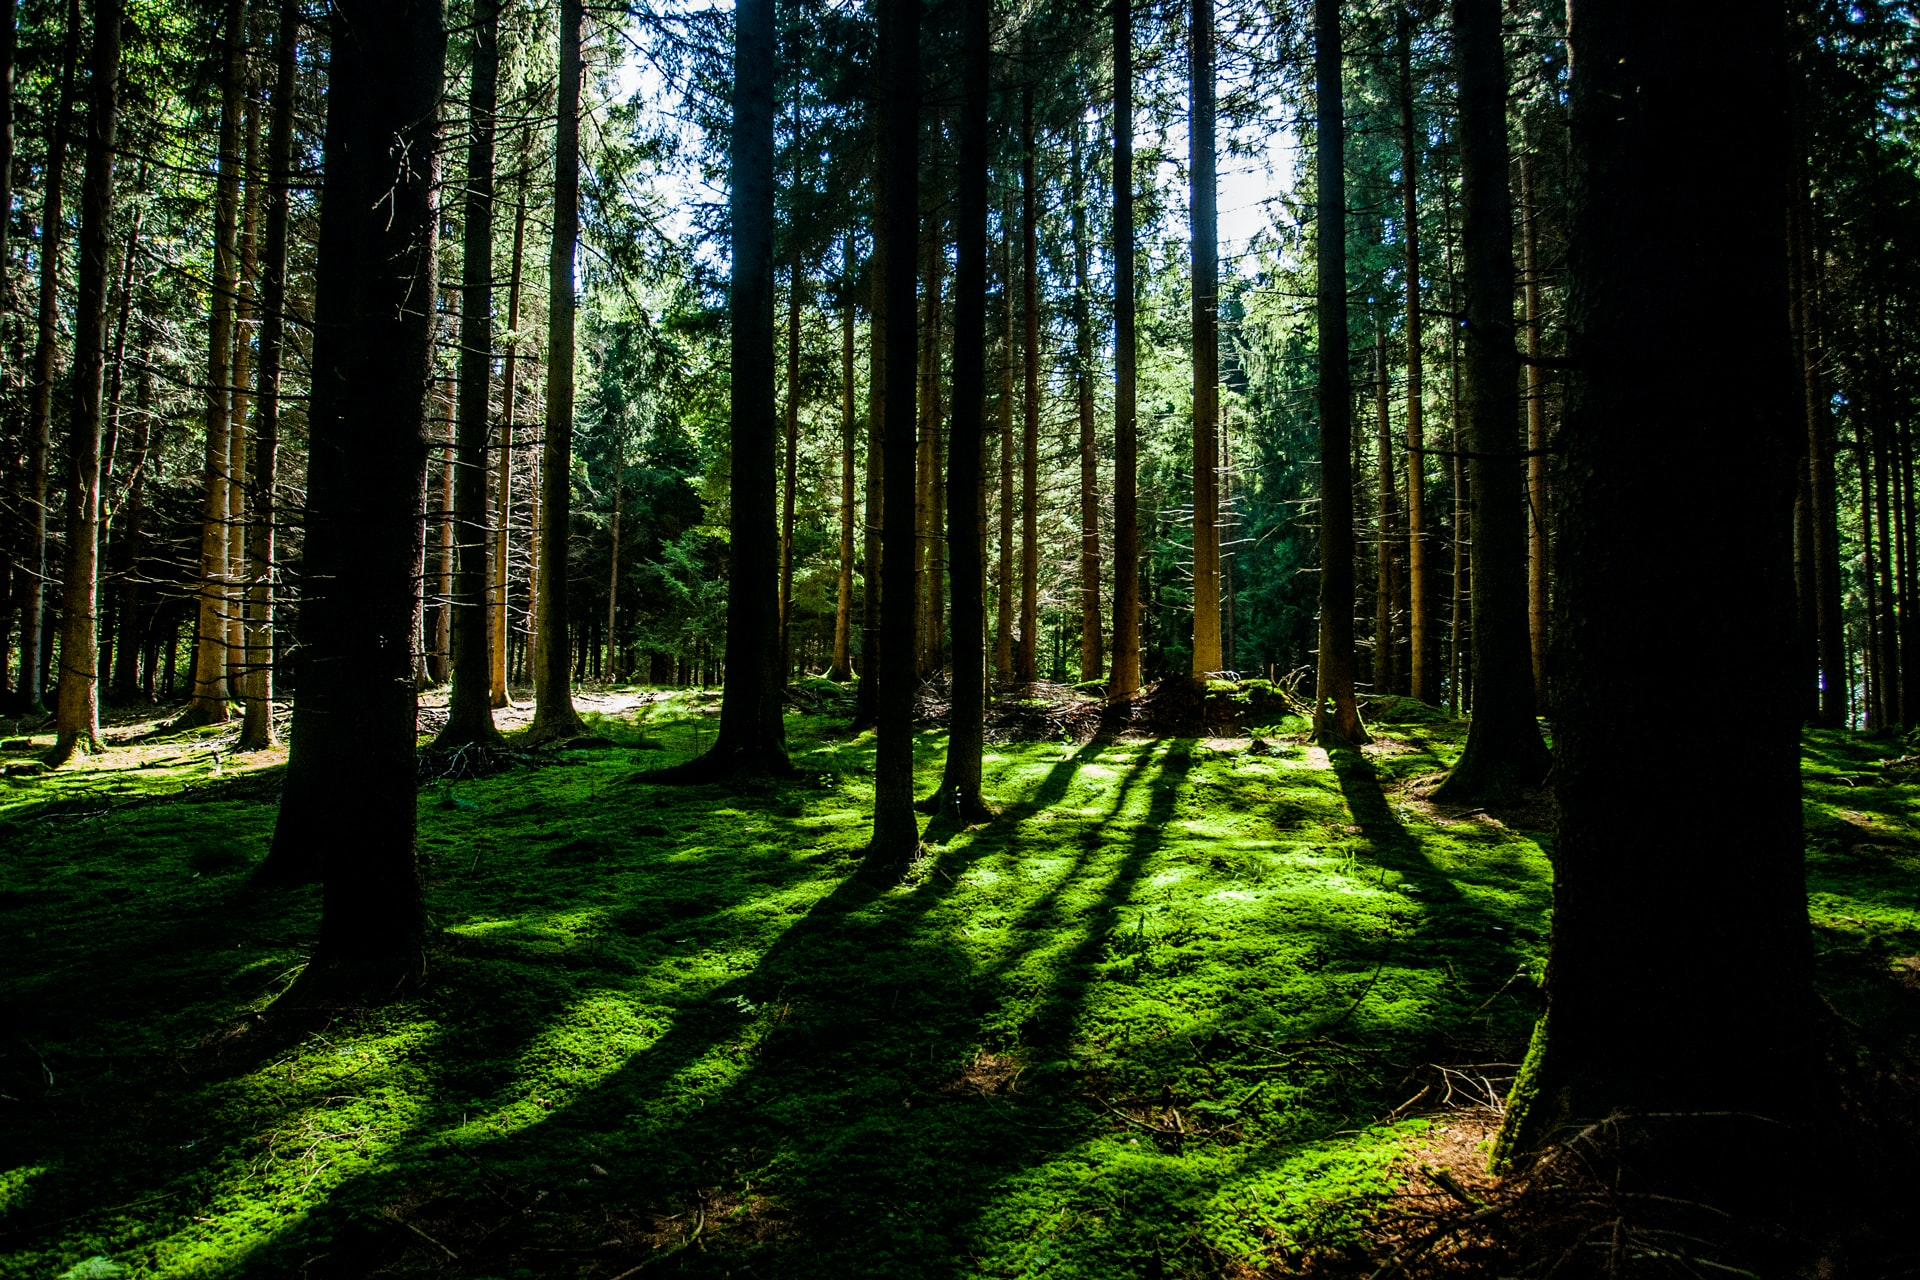 Seeing the forest